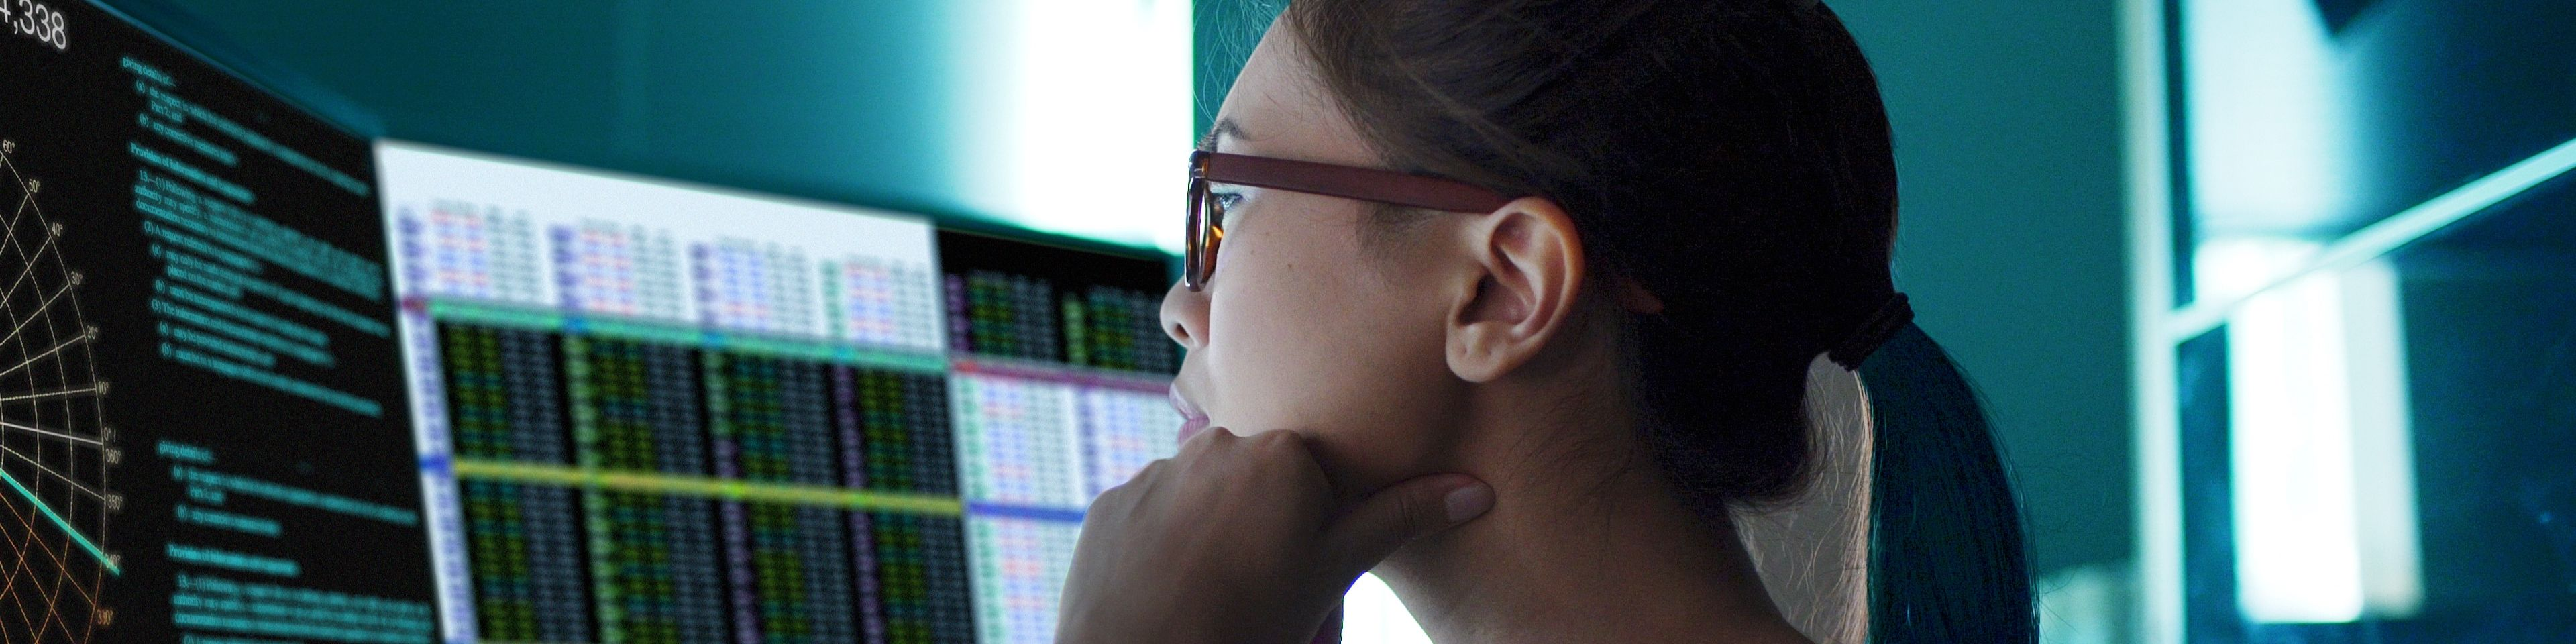 female accountant looking at data on a computer screen